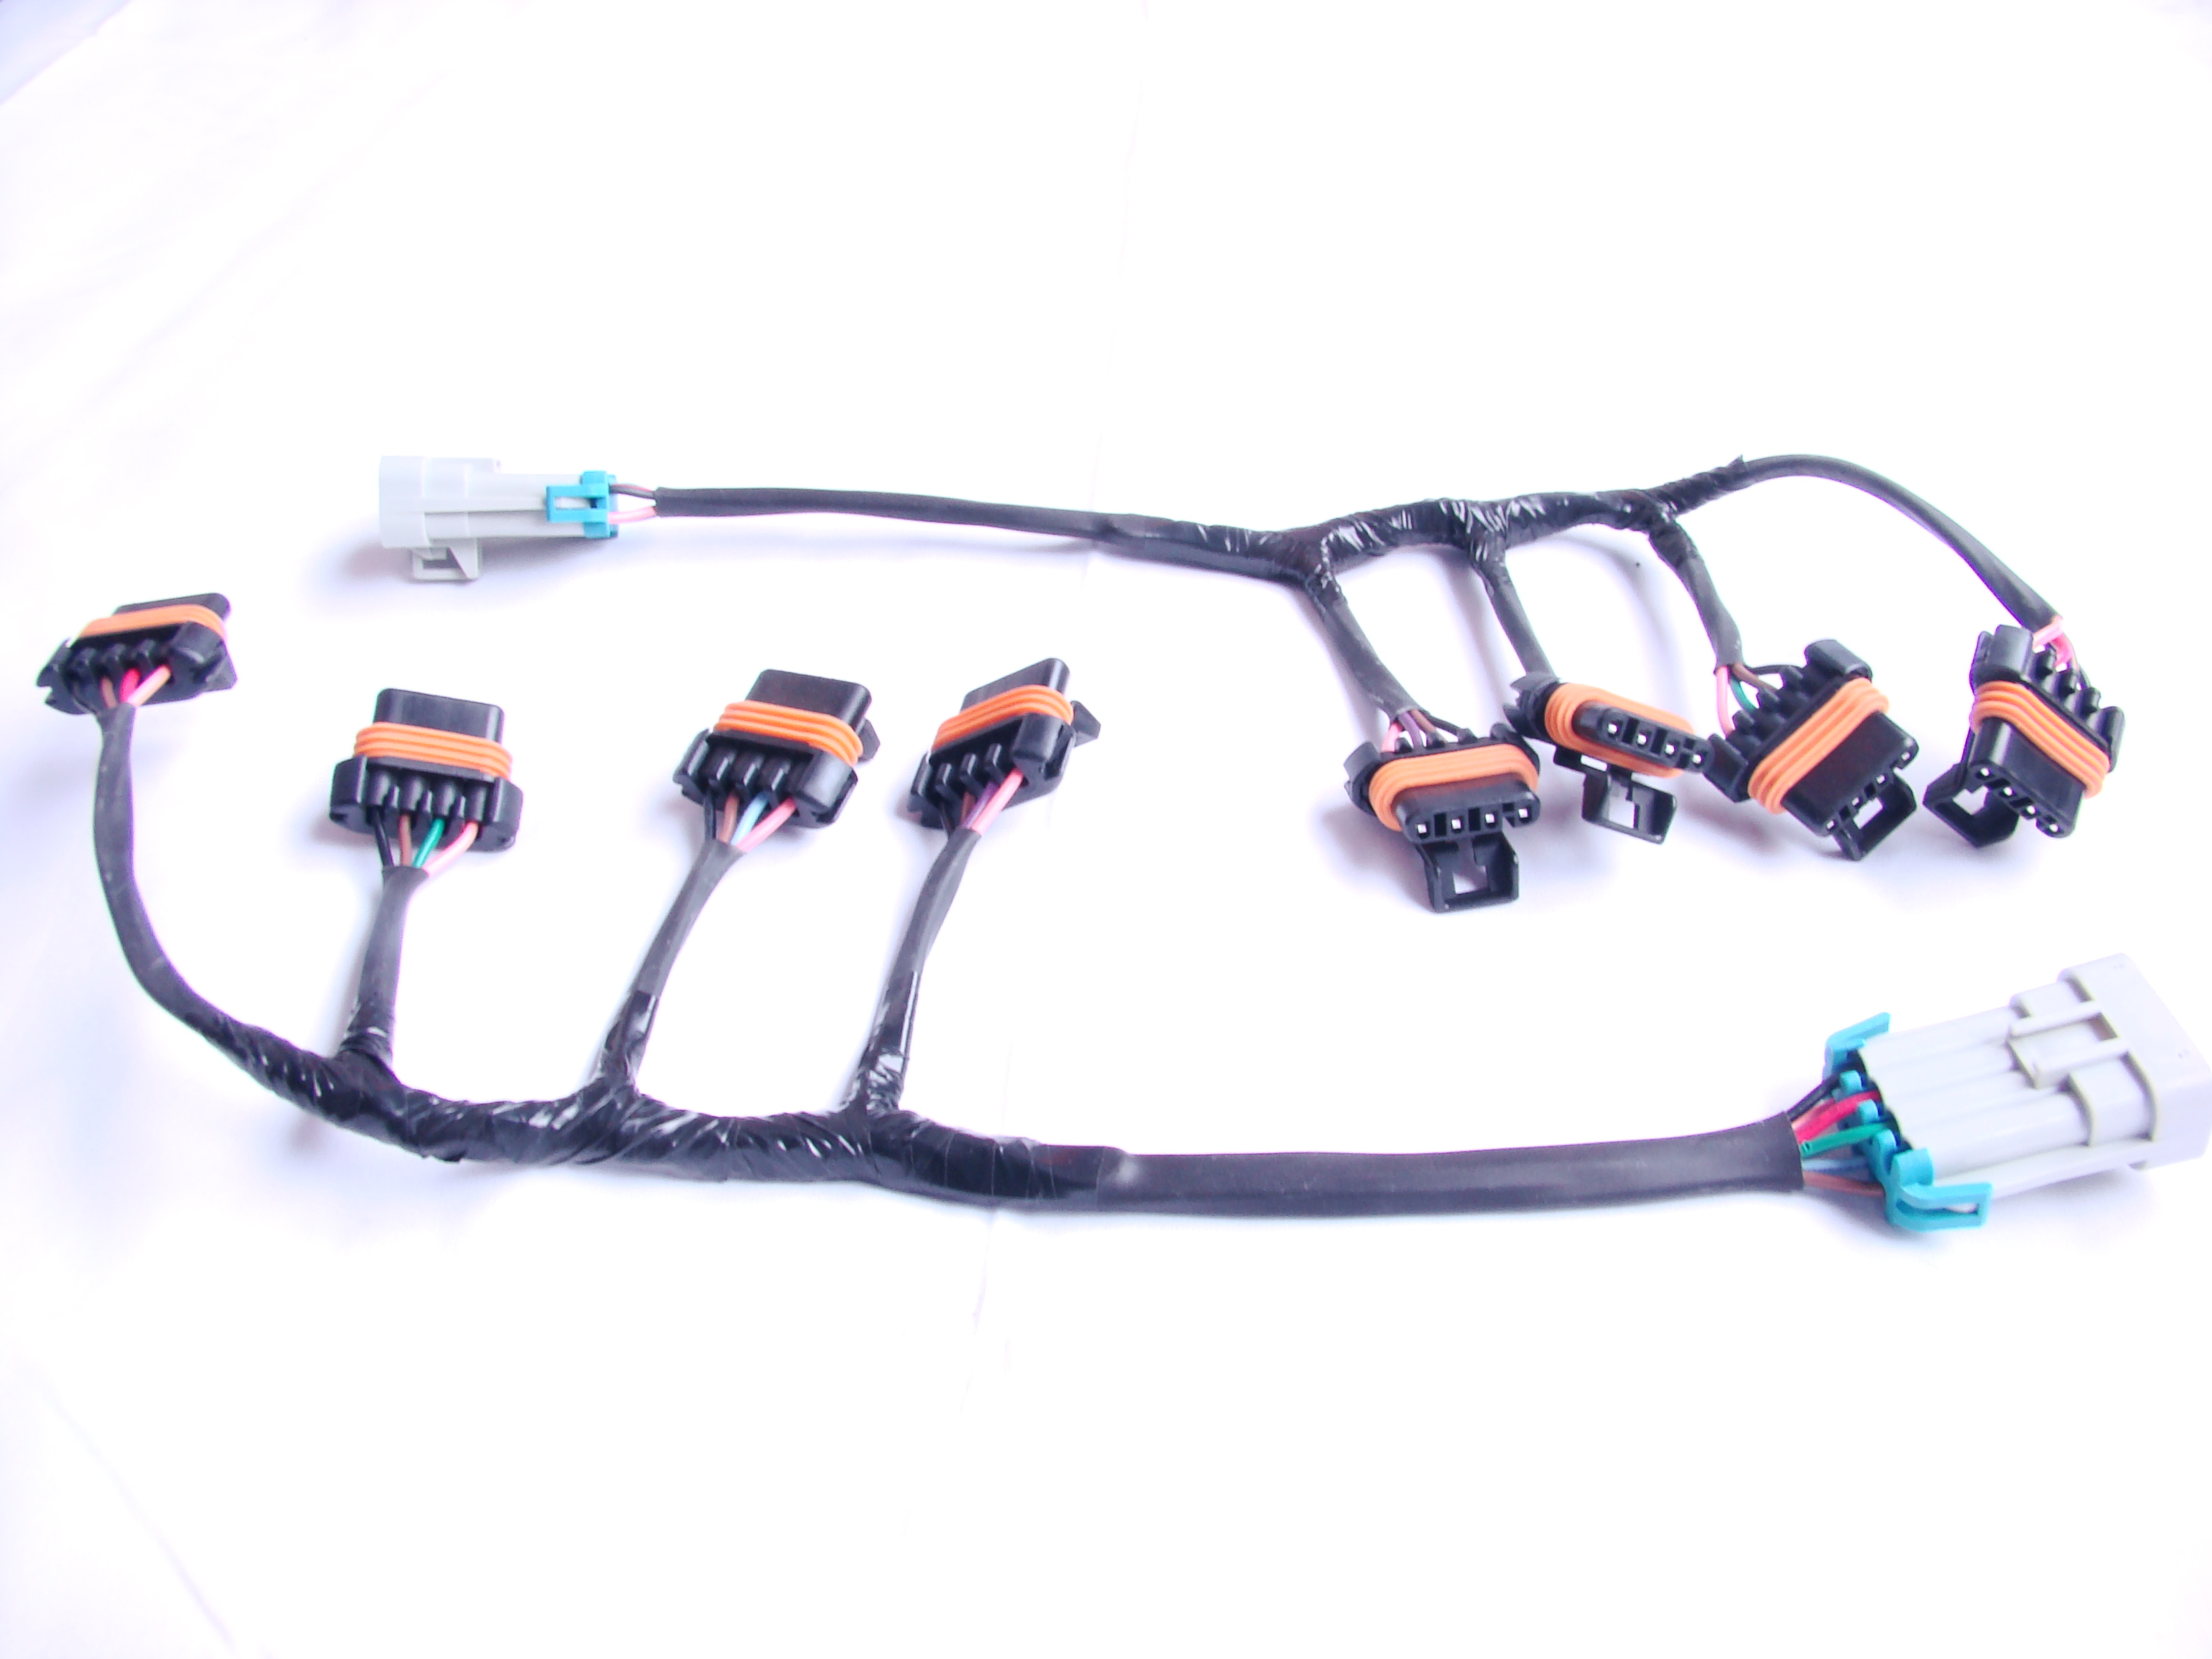 On 3 Performance Lsx Coil Relocation Sub Harness Ls1